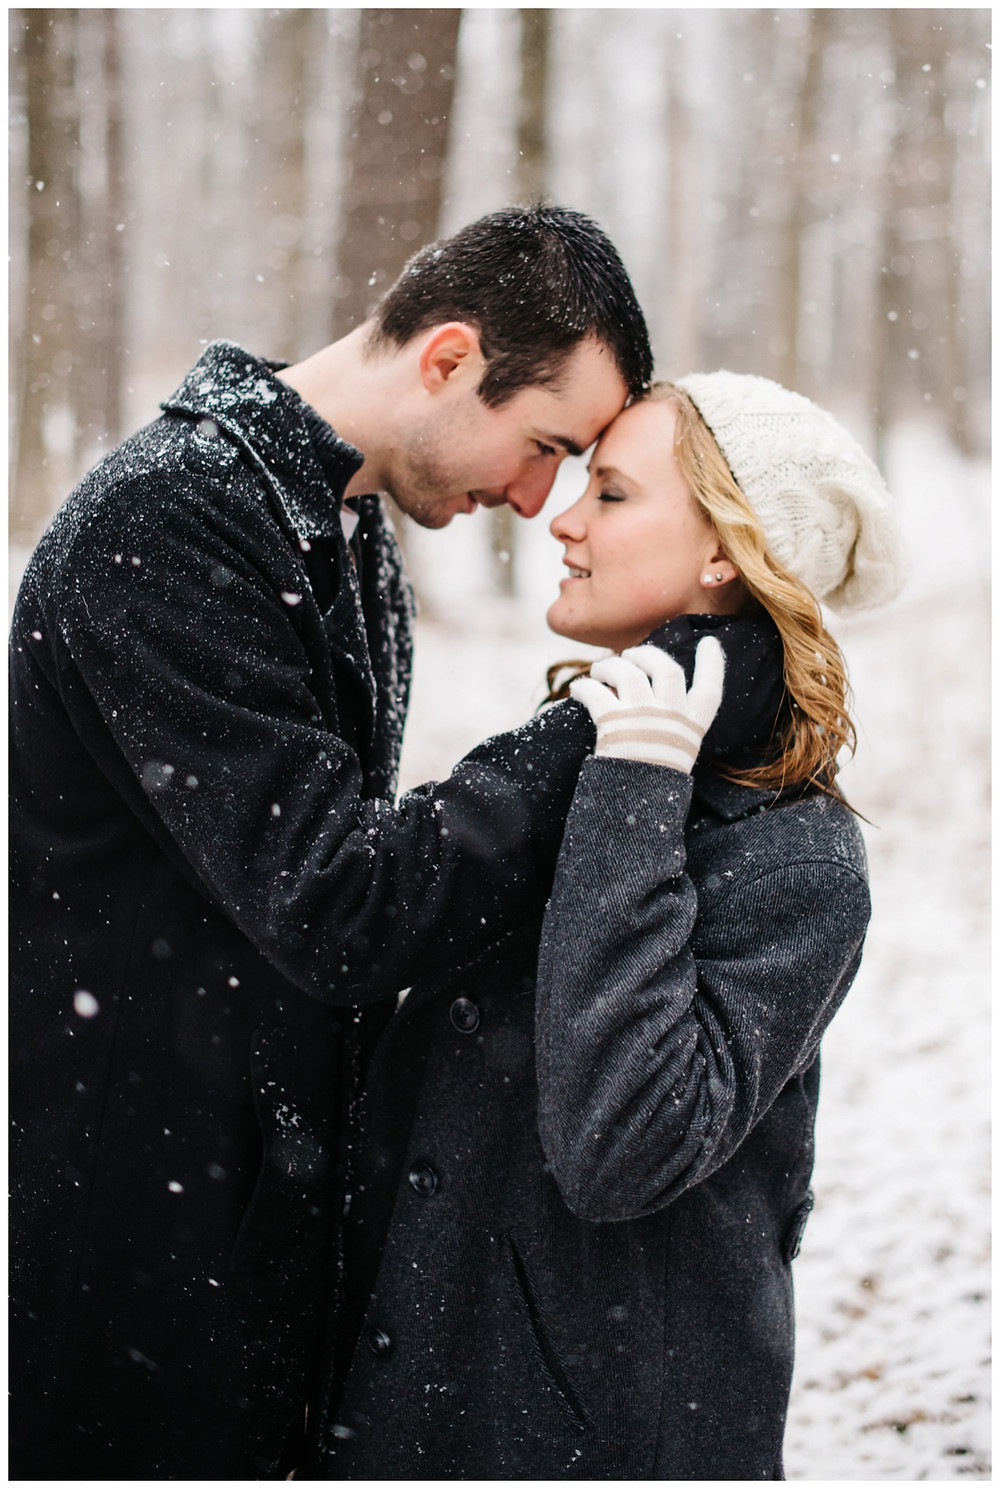 man-looking-into-fiances-eyes-at-snowy-sheboygan-engagement-session-by-green-bay-wedding-photographer-kyra-rane-photography